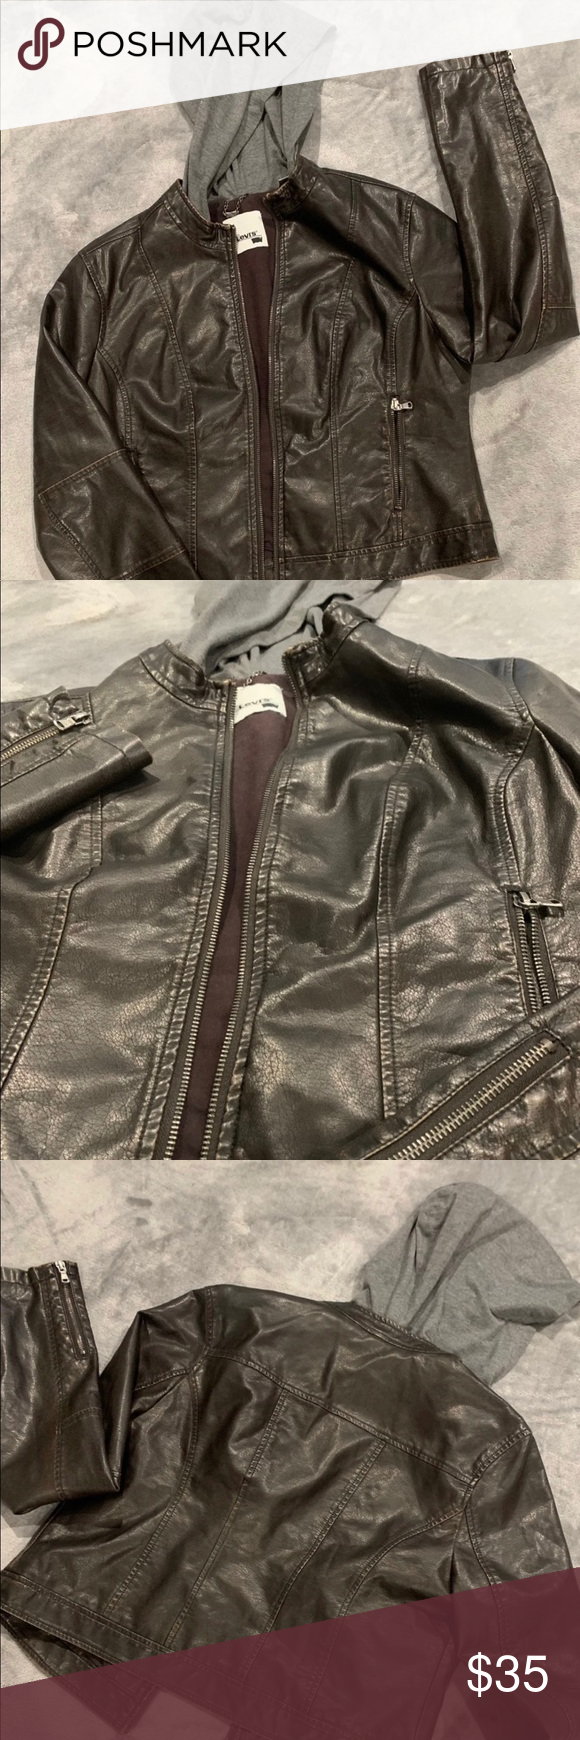 Vintage Leather Trucker Jacket With Hood Size L Trucker Jacket Hooded Jacket Leather [ 1740 x 580 Pixel ]